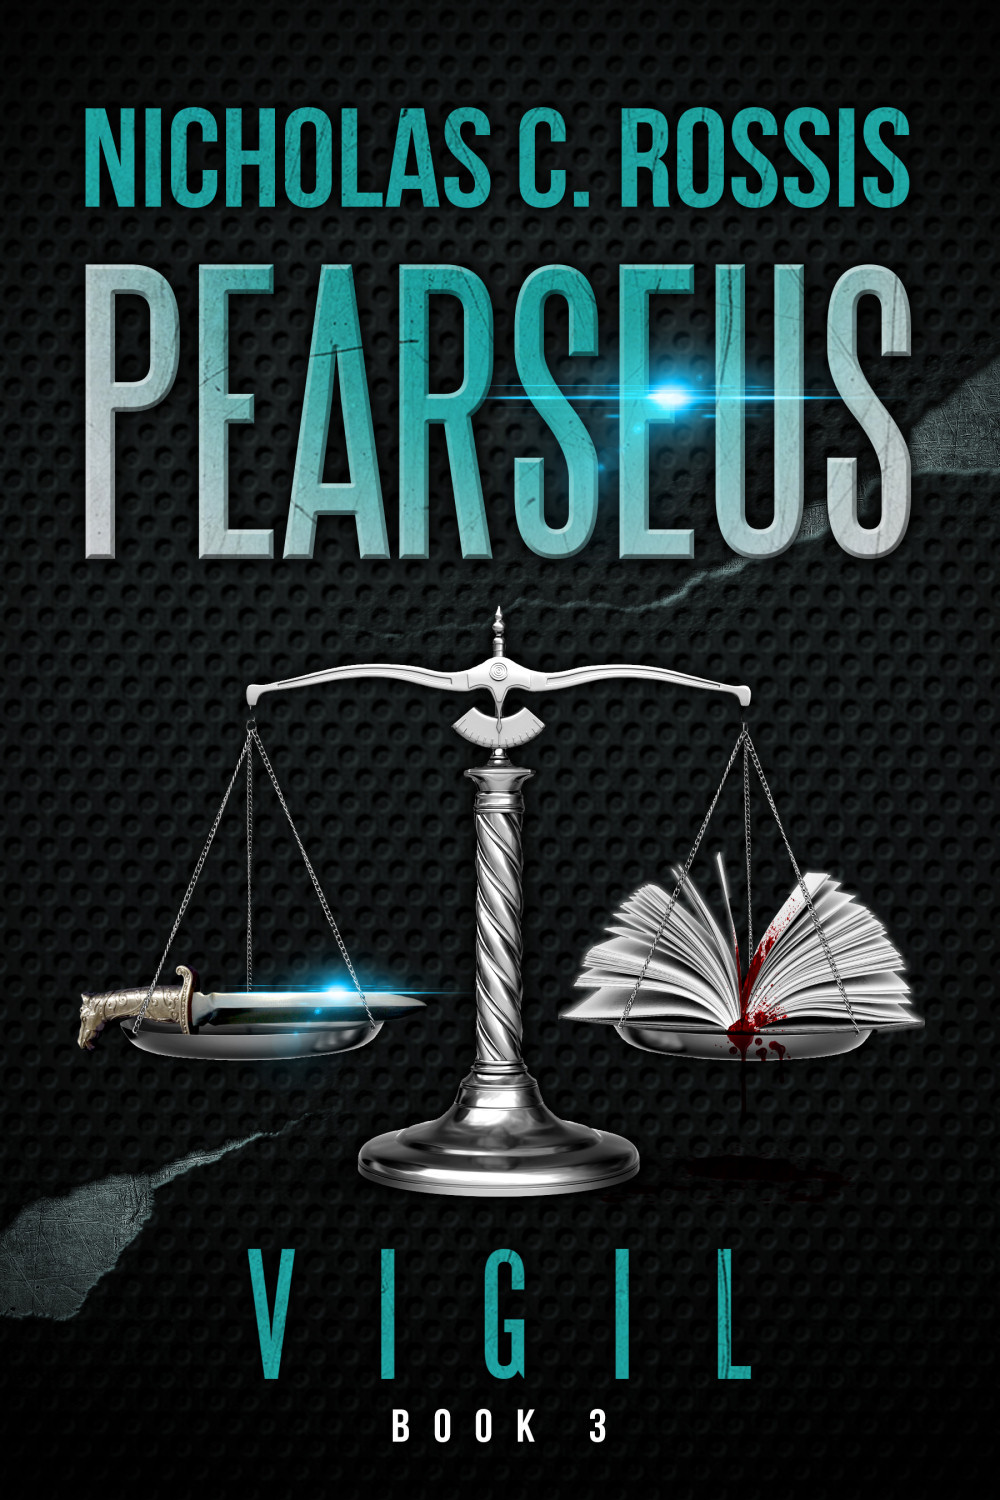 Start reading Pearseus, Vigil (Book 3)